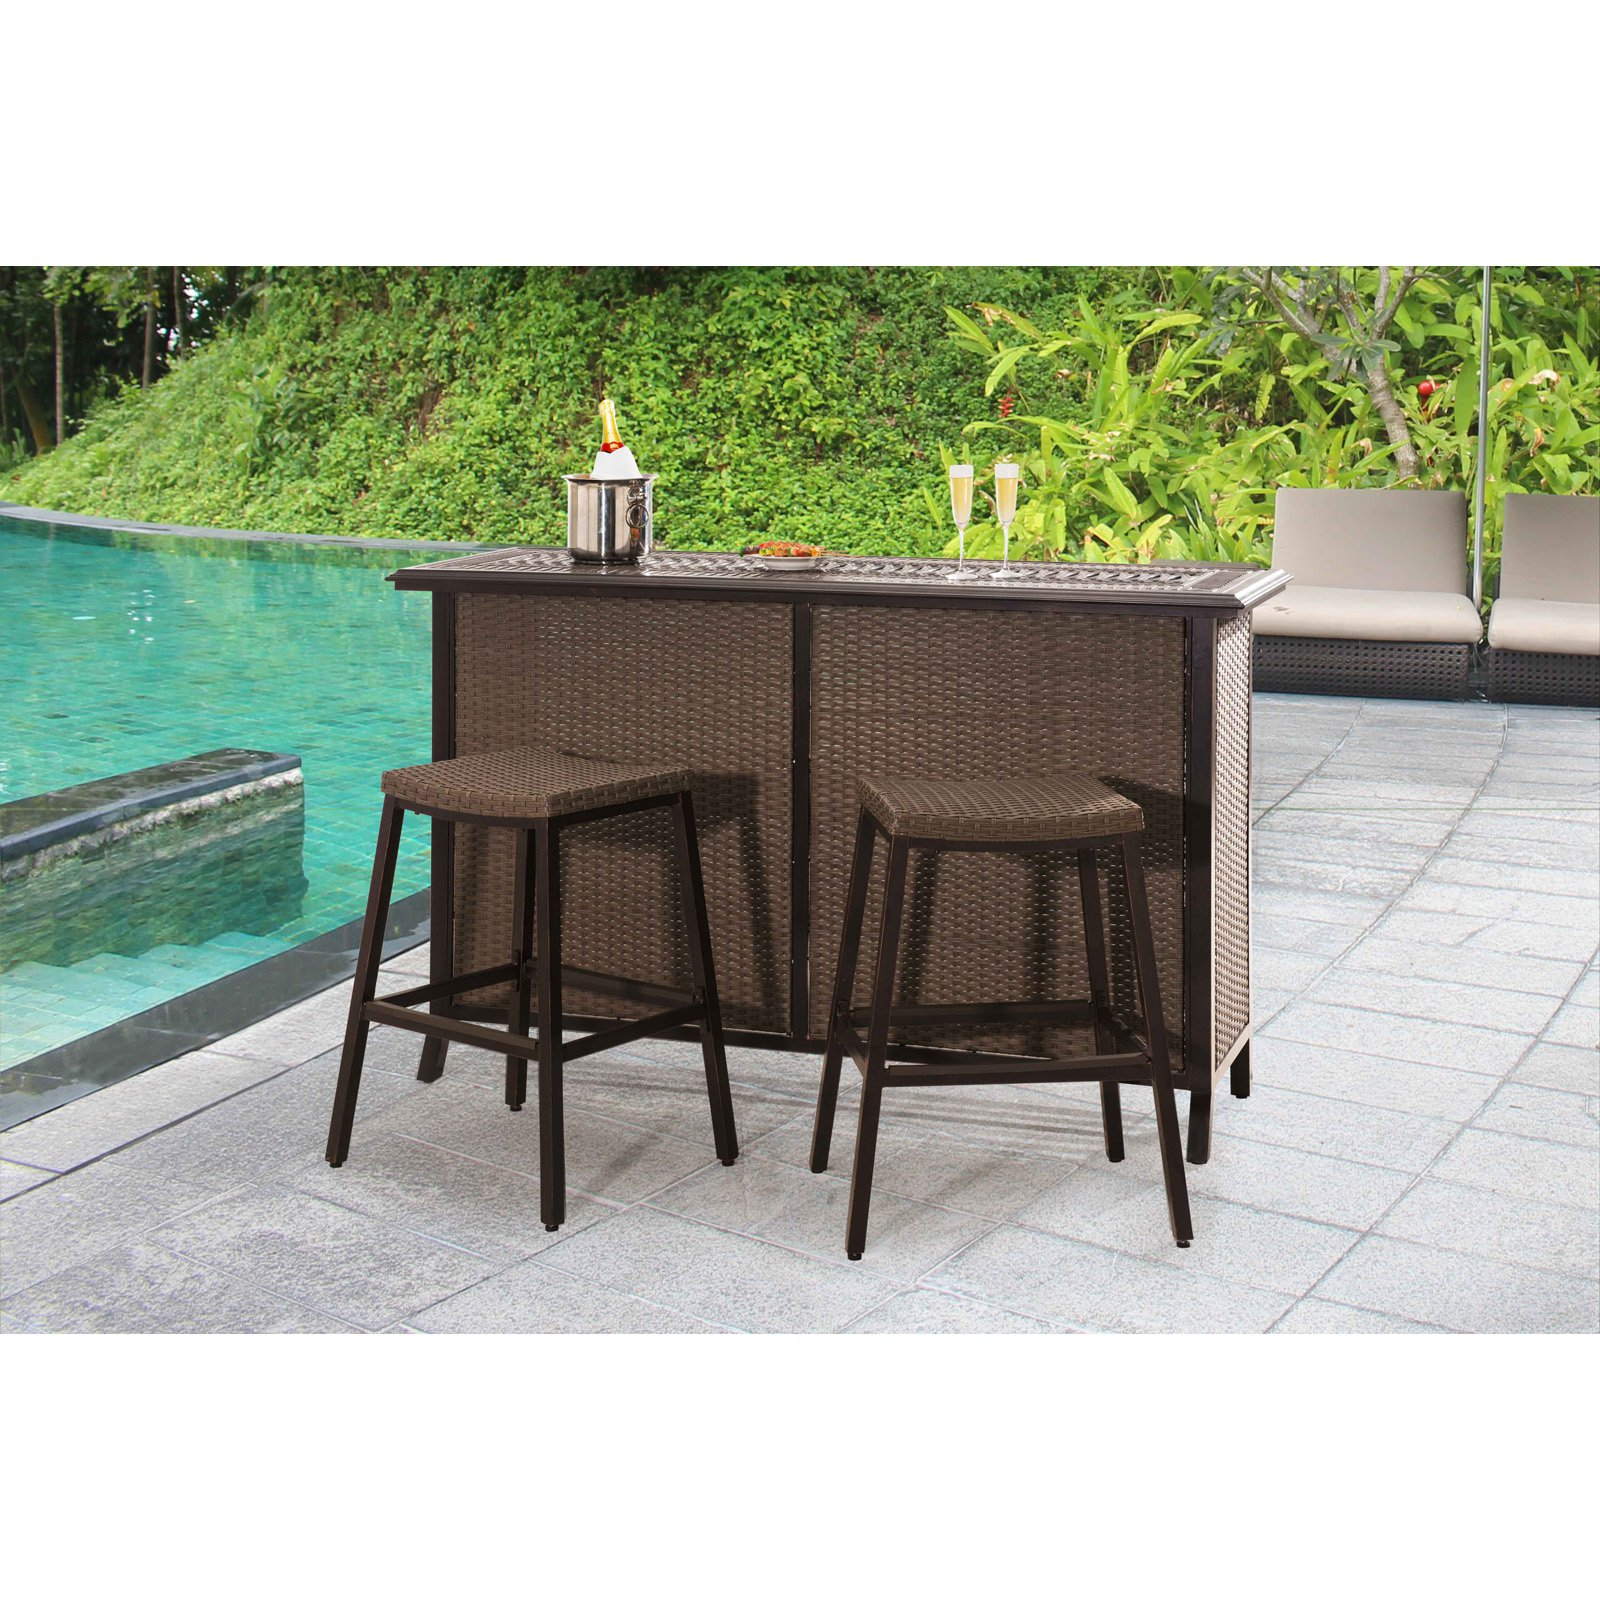 "Sunjoy 110214002 Tulsa 73"" x 24"" x 43"" Aluminum and Wicker Bar Set"